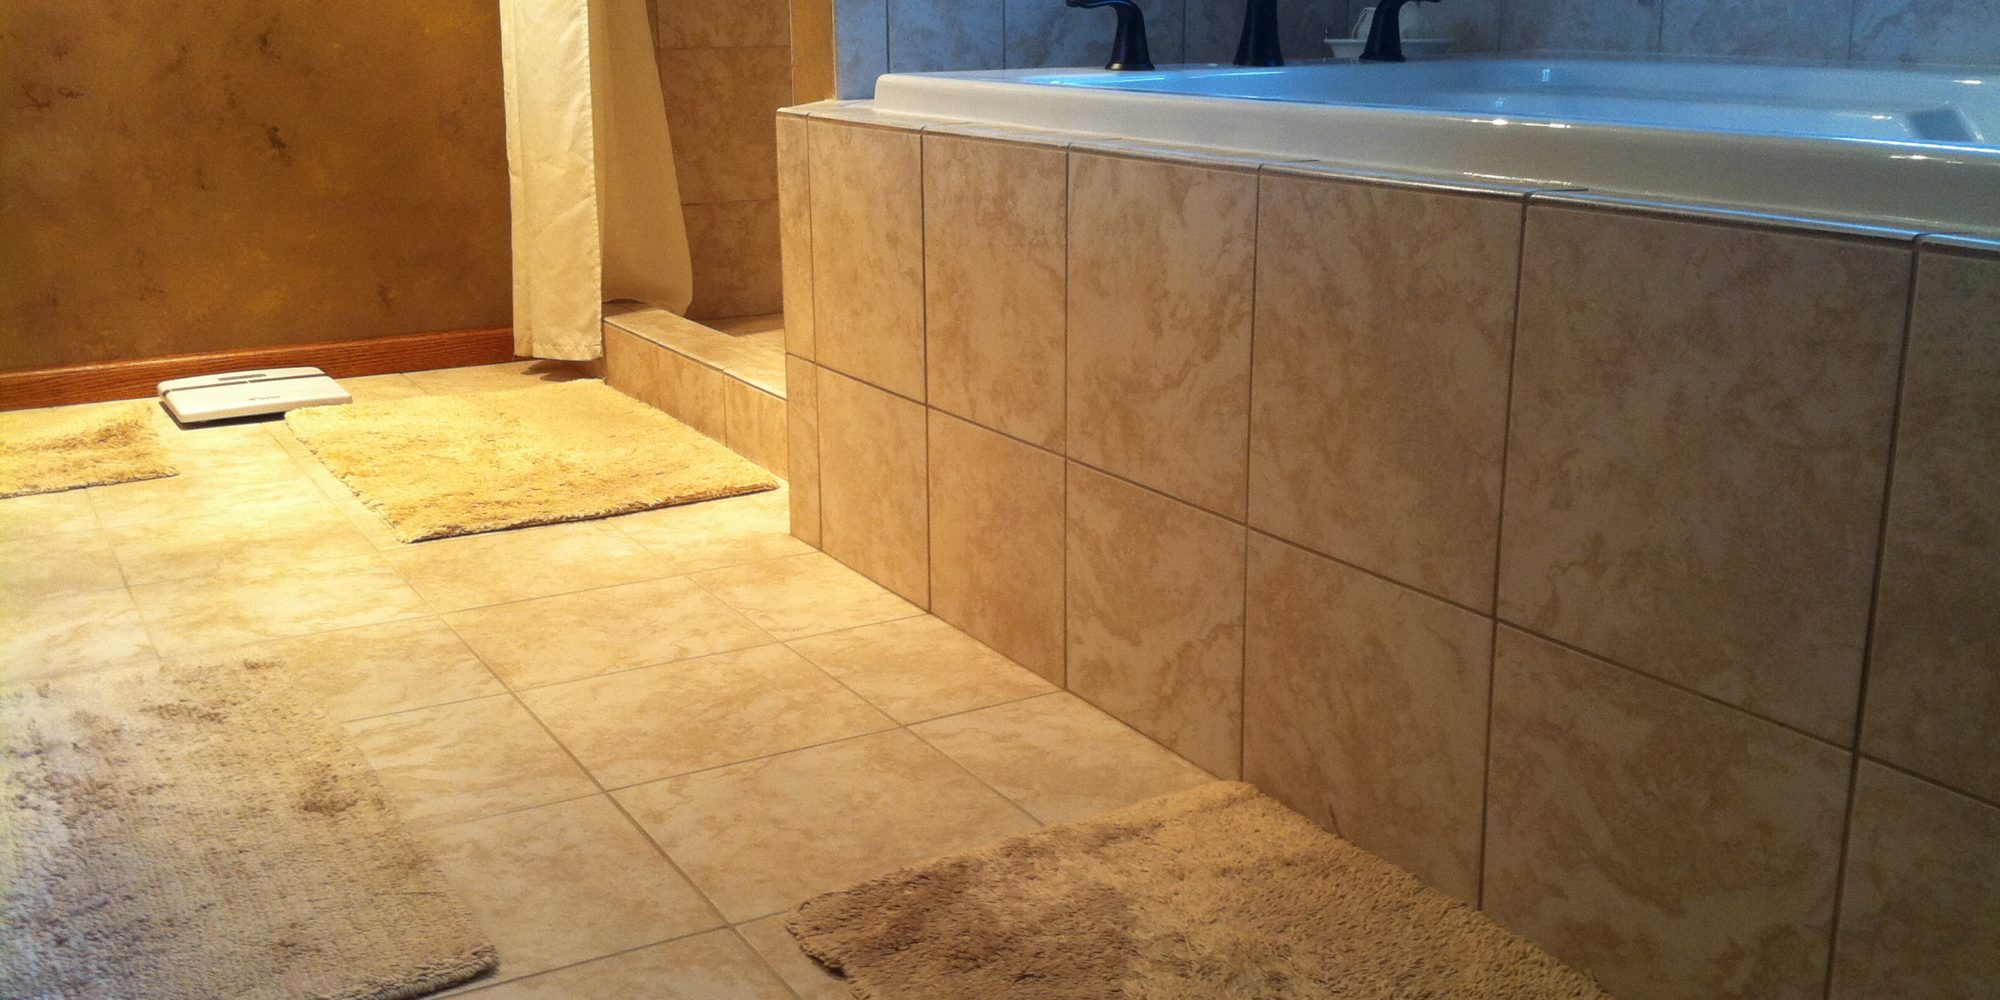 bathroom tile installation - Bathroom Tile Installation